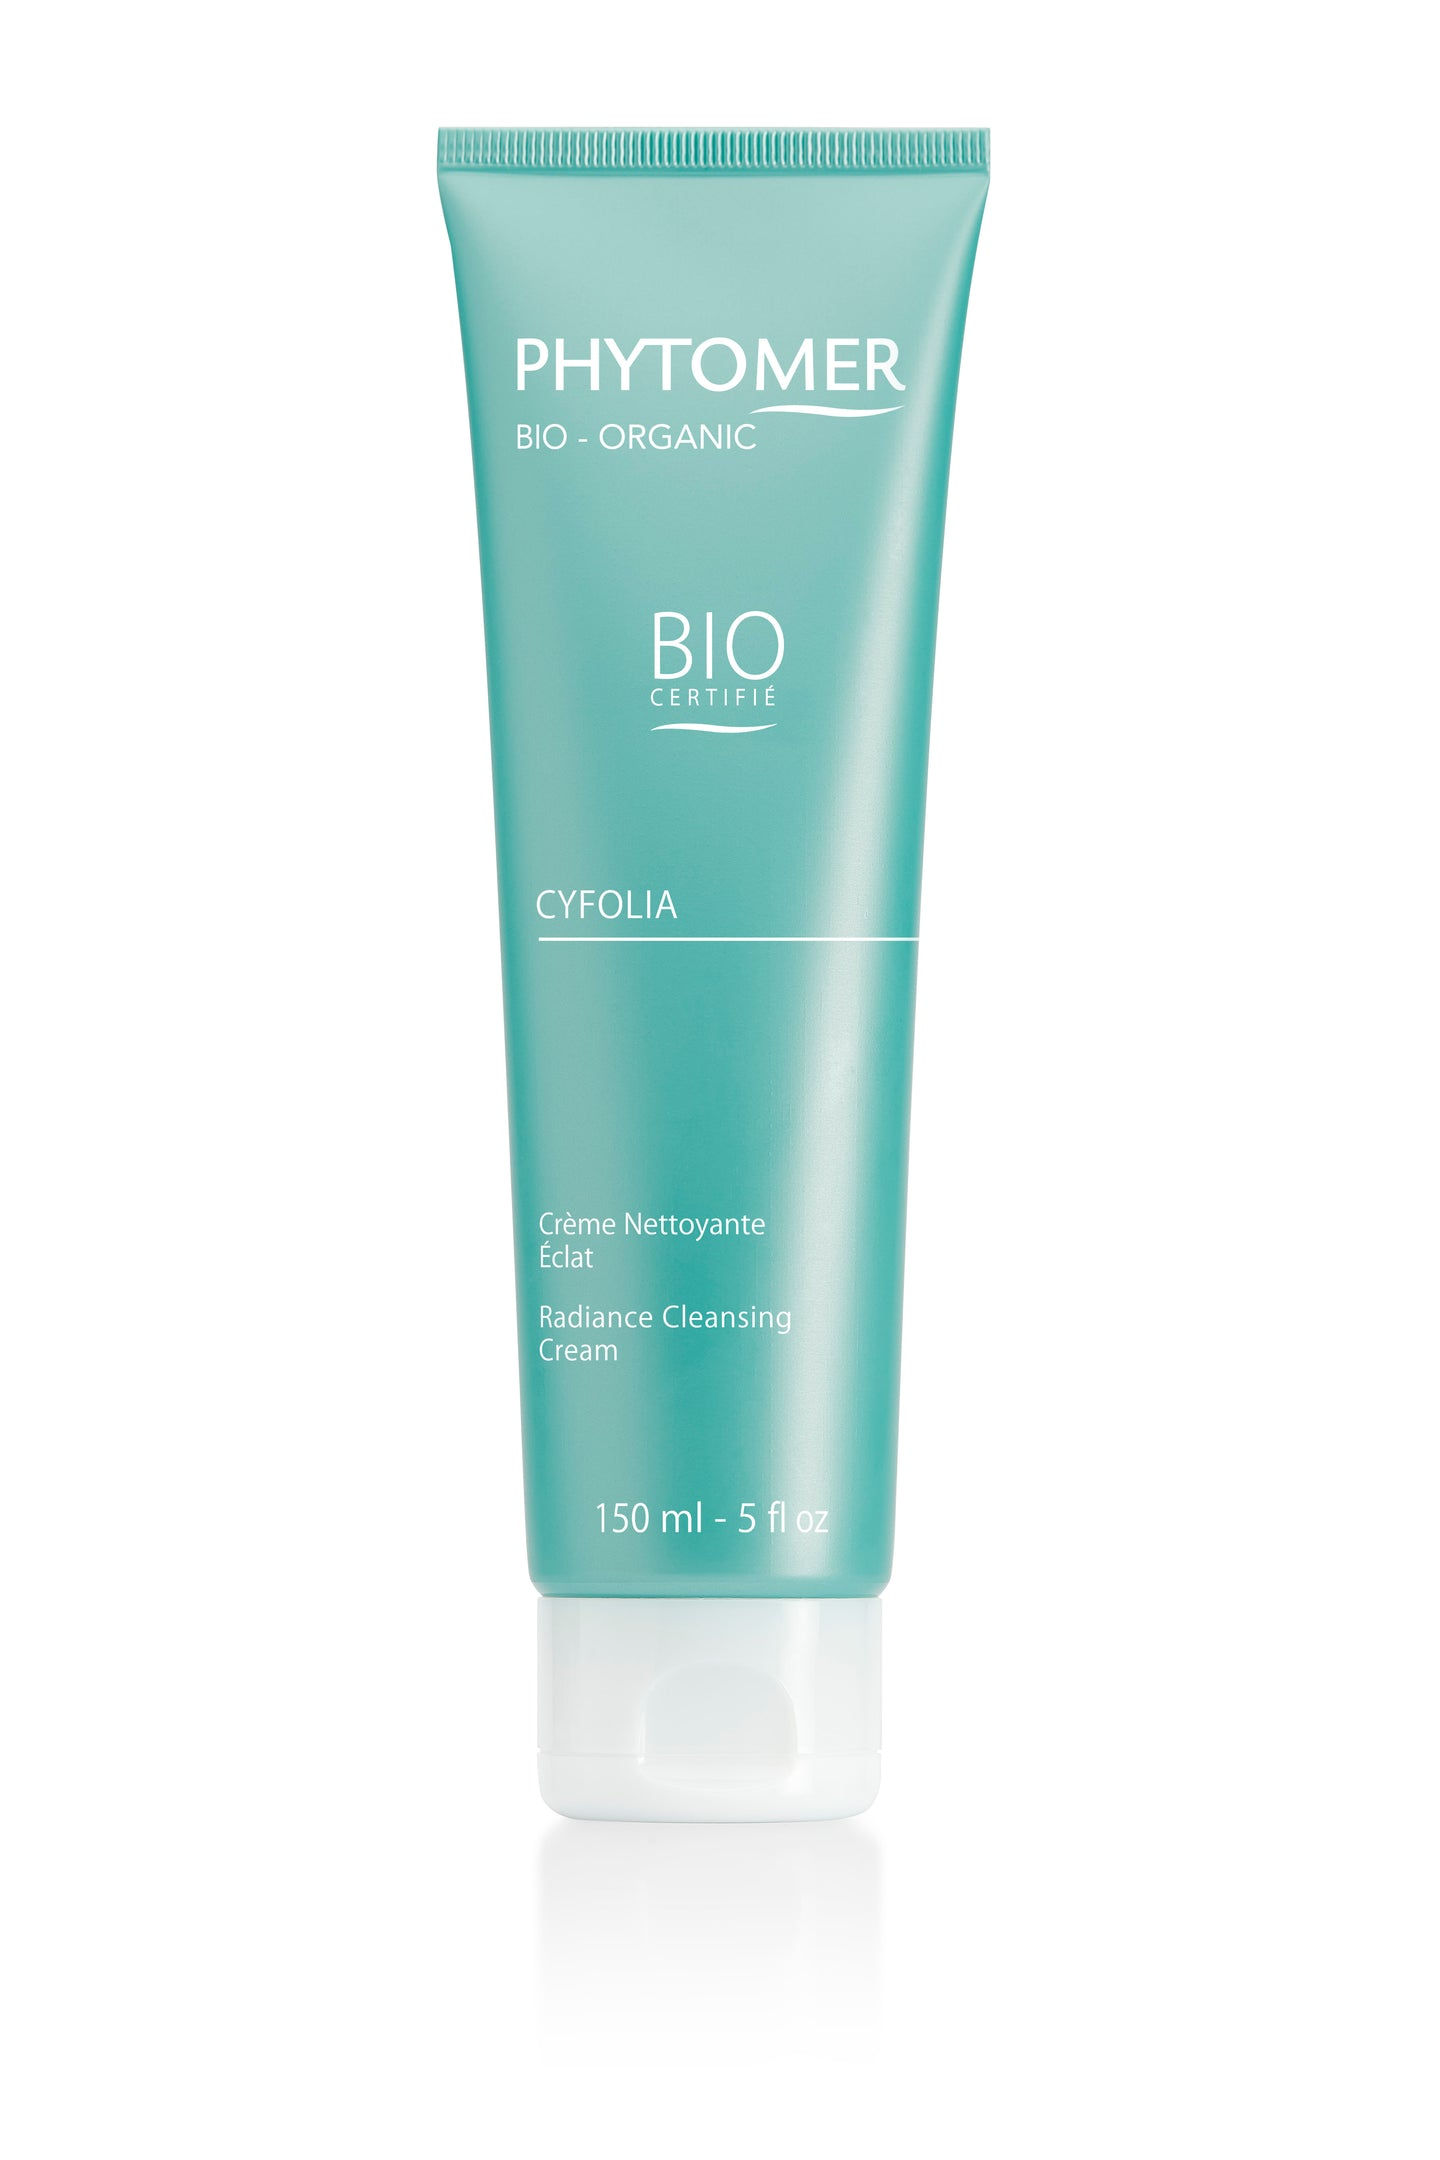 Phytomer ORGANIC Cyfolia Radiance Cleansing Cream at The Summit Spa